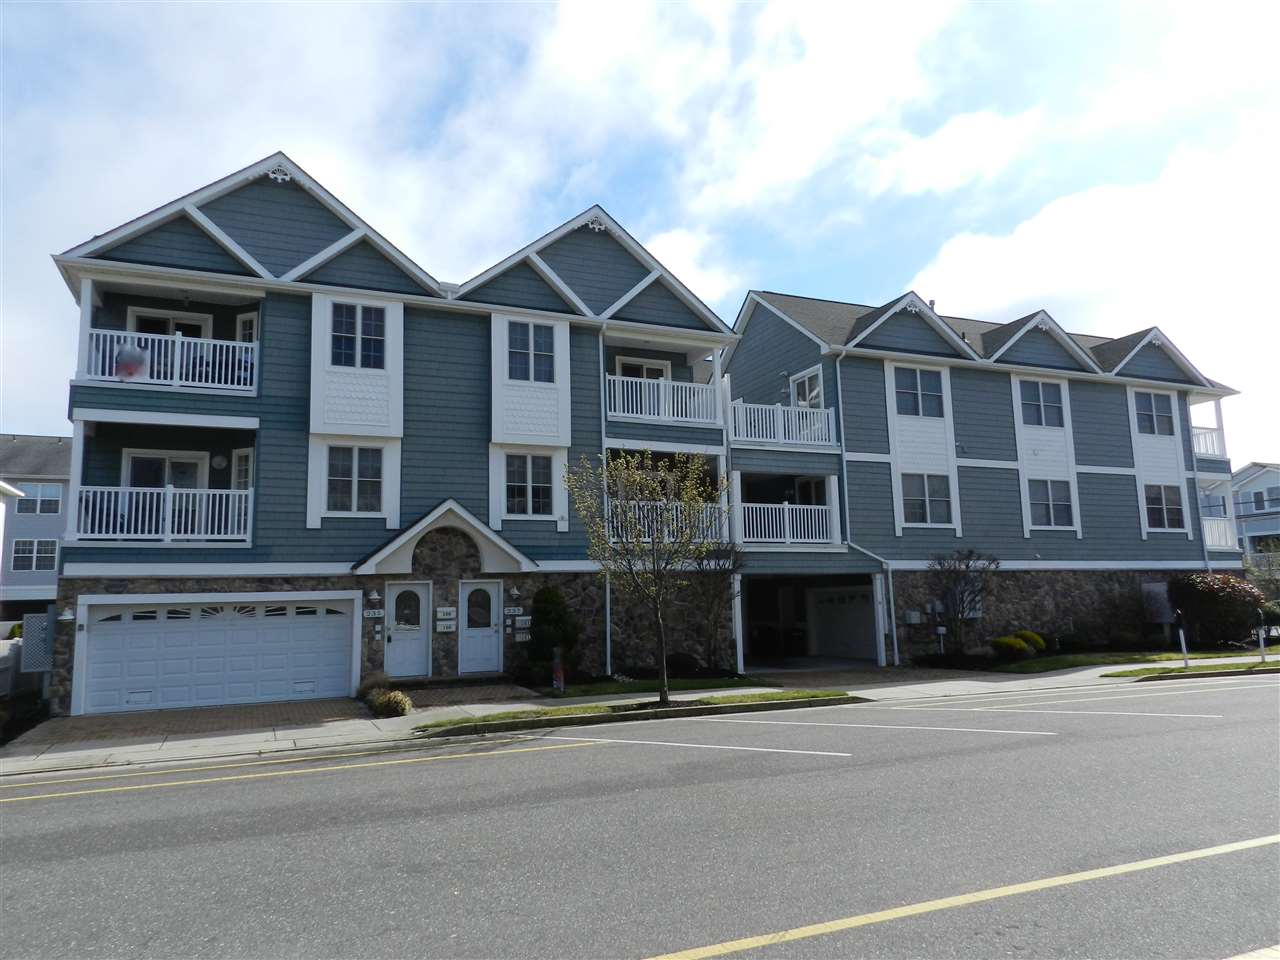 235, Unit 200 Hildreth, Wildwood